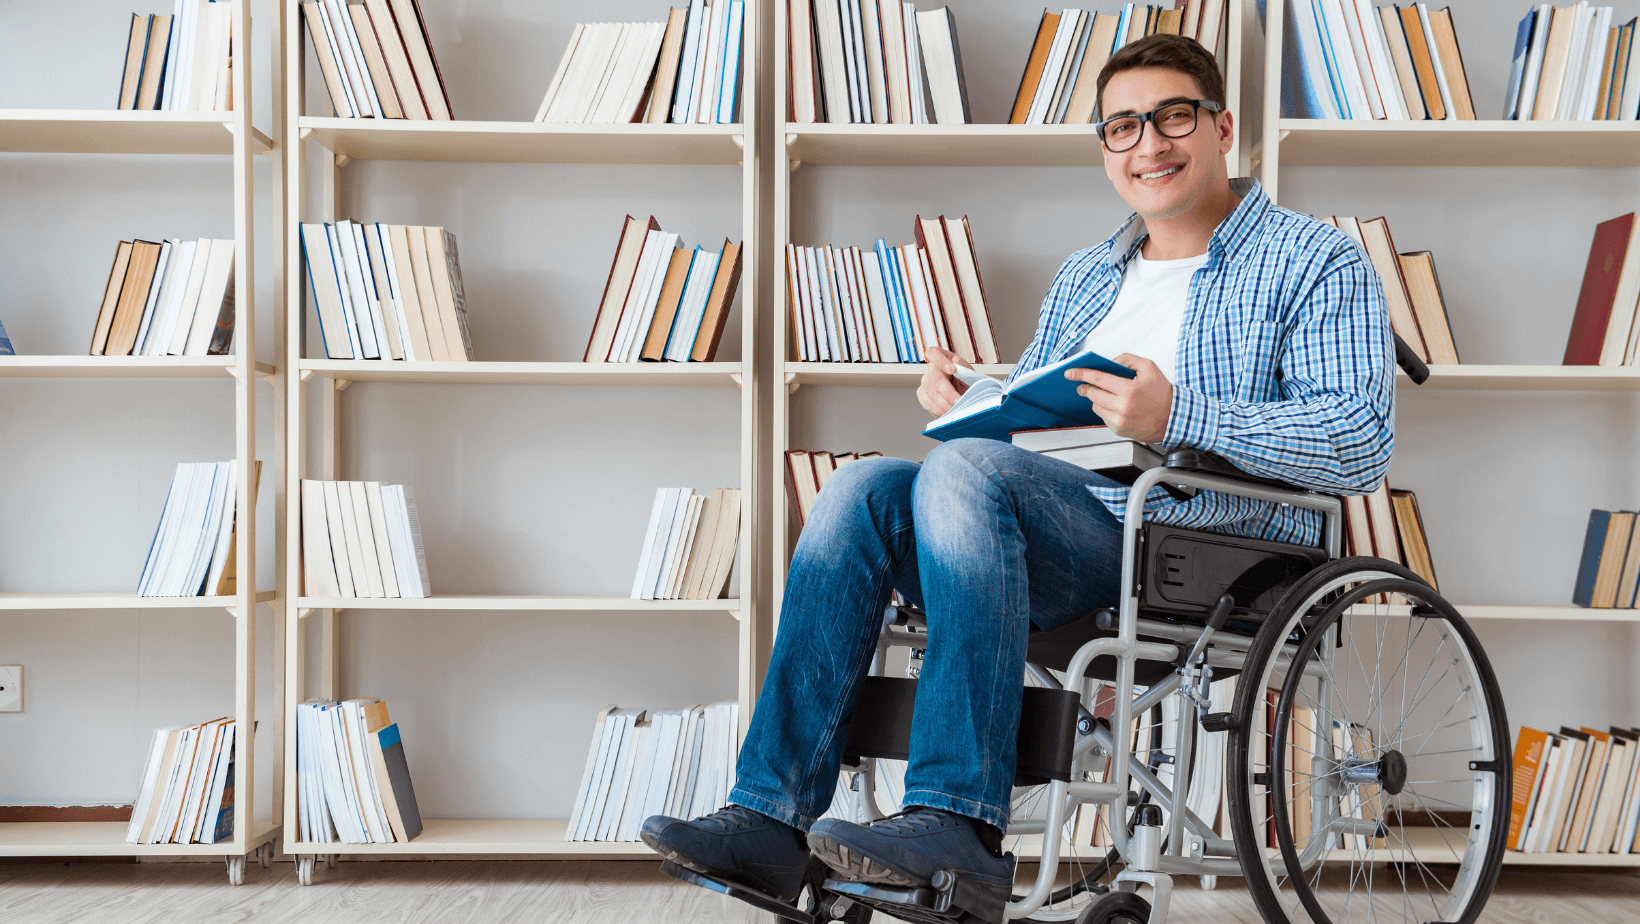 Person in wheelchair by bookshelf.